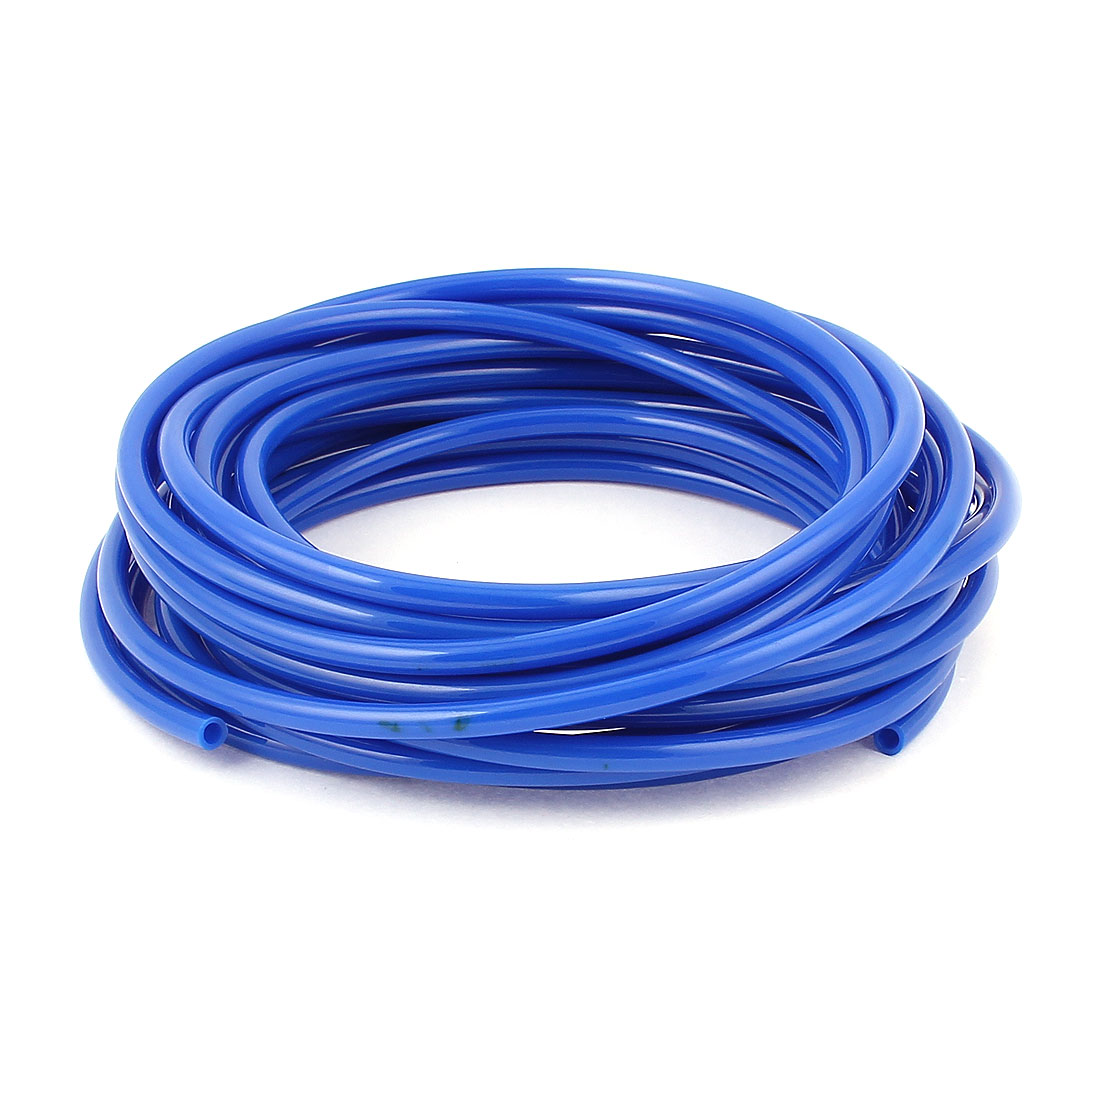 10M Long 8mm x 5mm Dia Pneumatic Polyurethane PU Air Tube Tubing Pipe Hose Blue